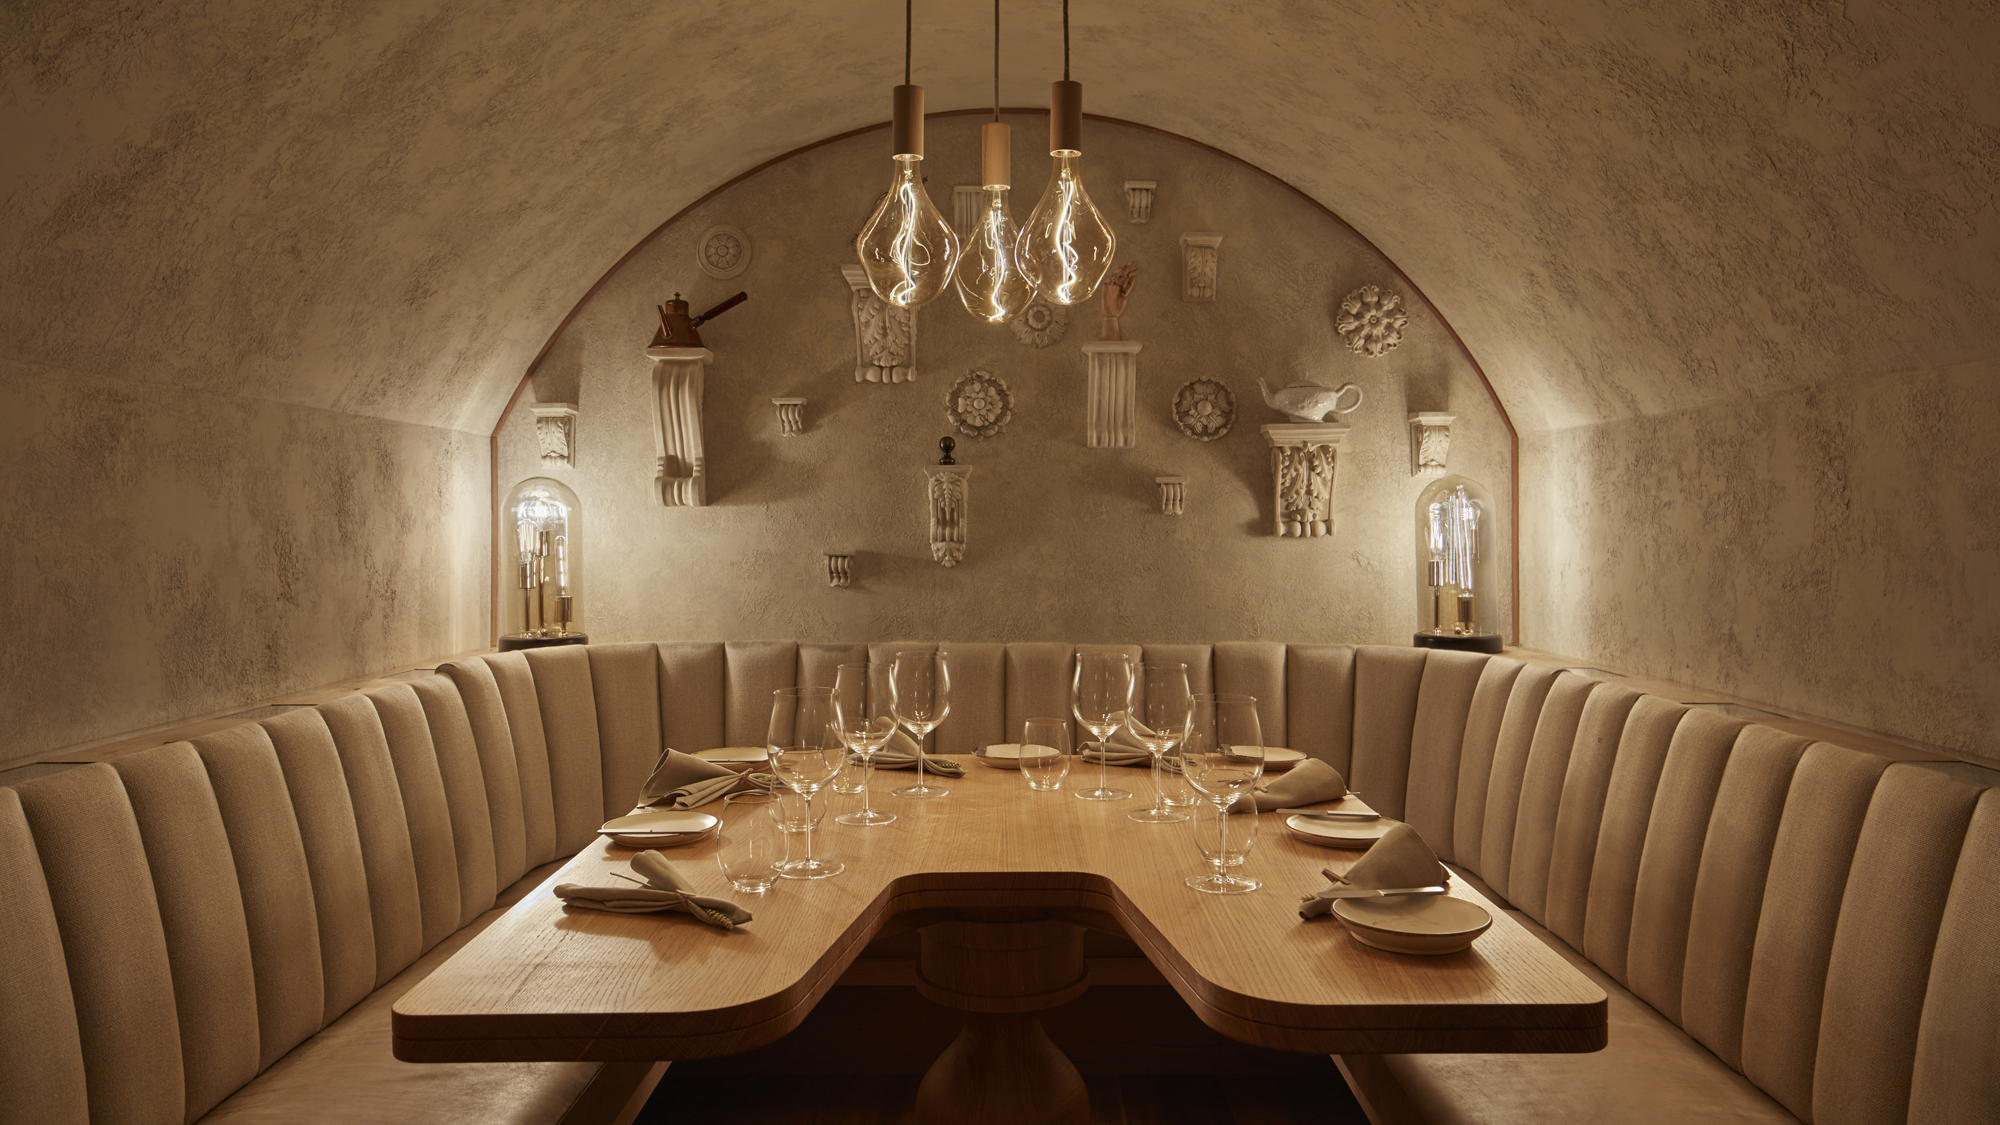 Hide Ollie Dabbous restaurants west end london mayfair private dining rooms shadow room vault interactive dining